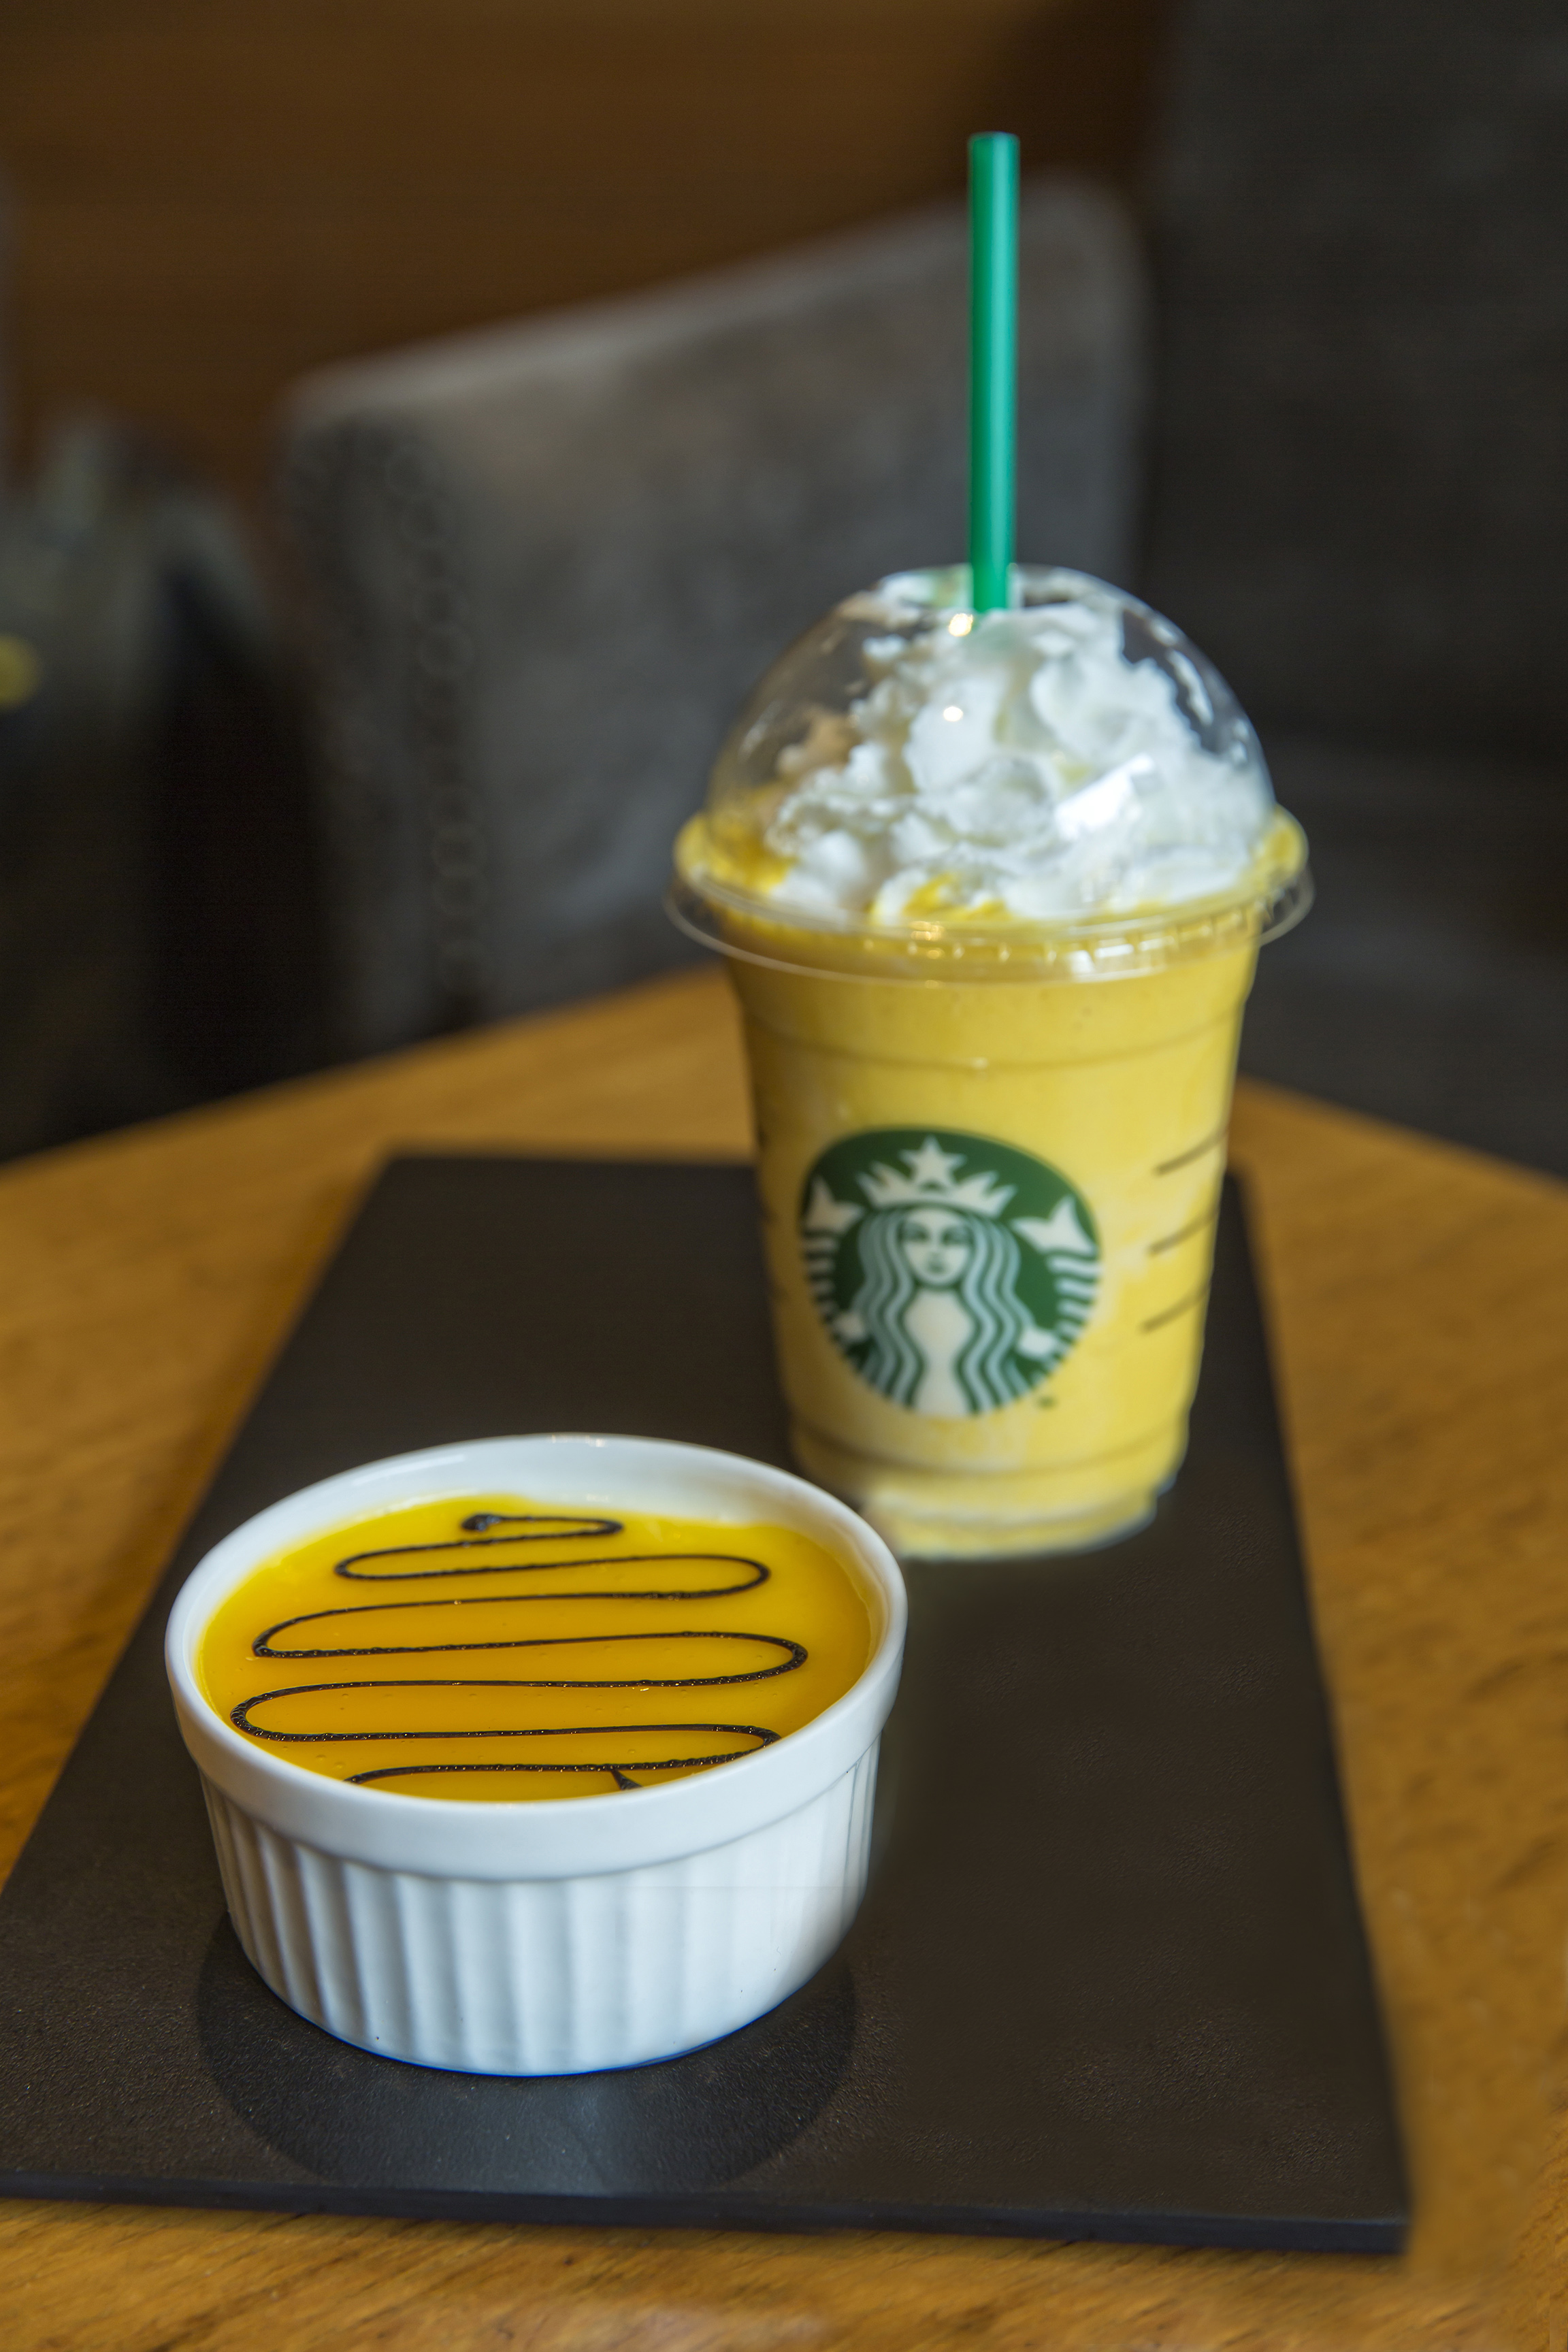 Mango treats at Starbucks